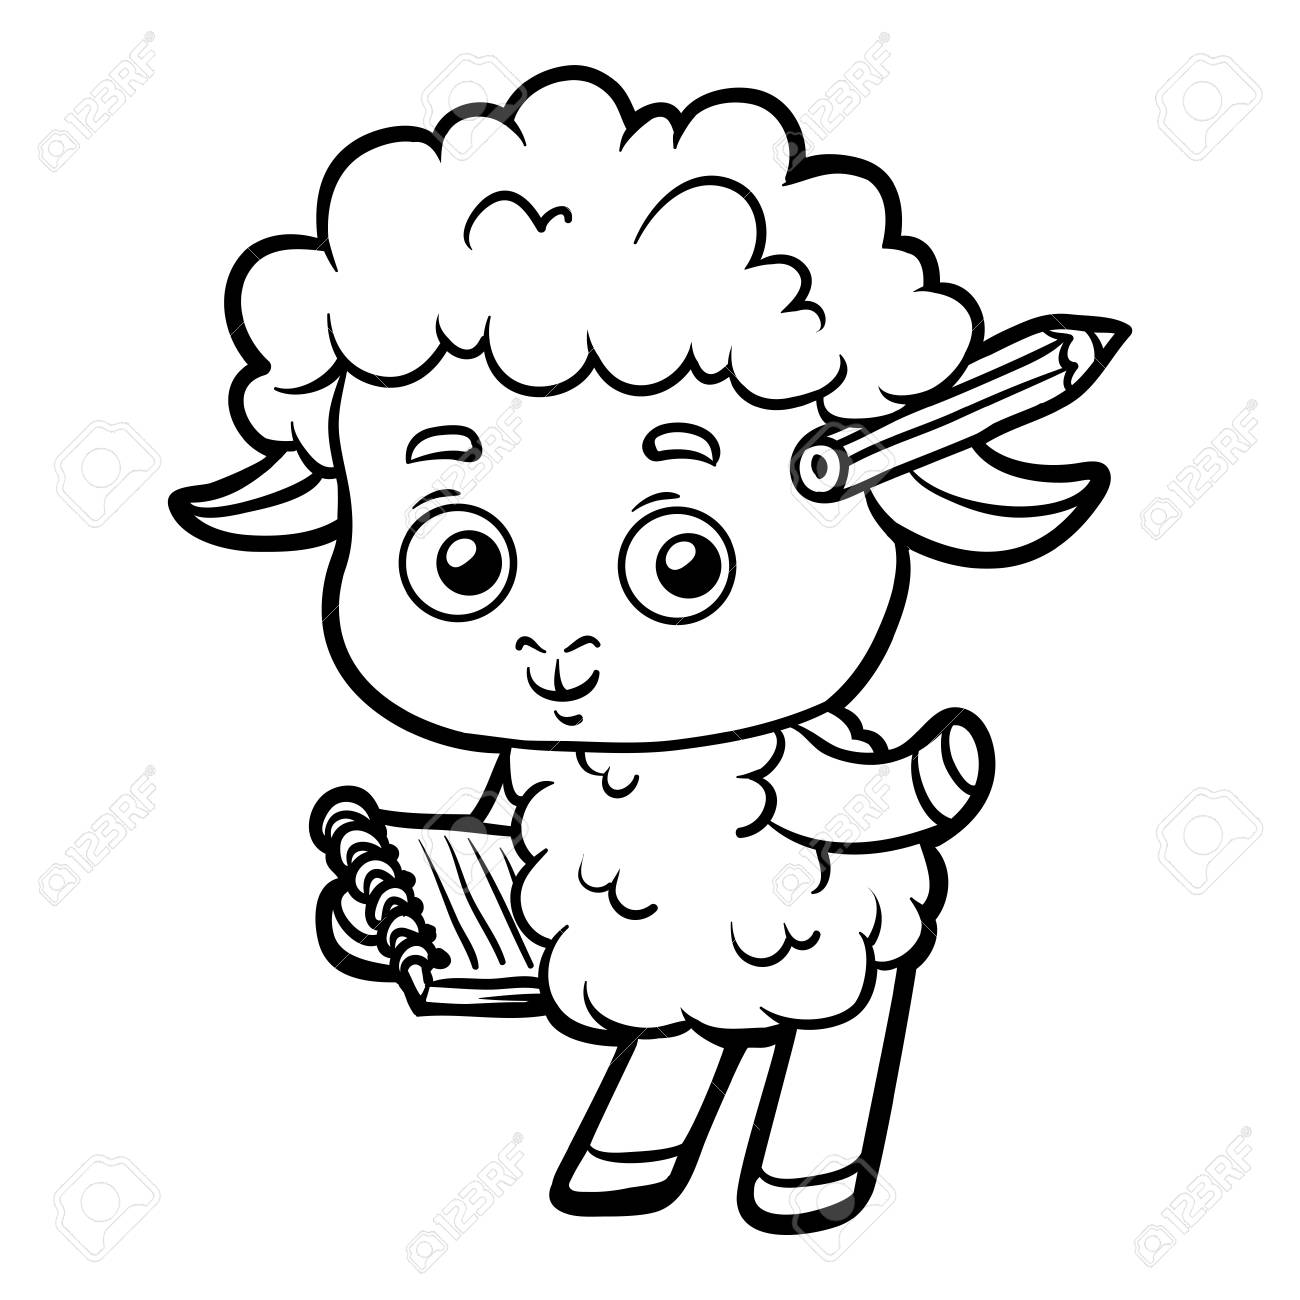 Coloring Book For Children, Sheep Writer With A Pencil And A ...